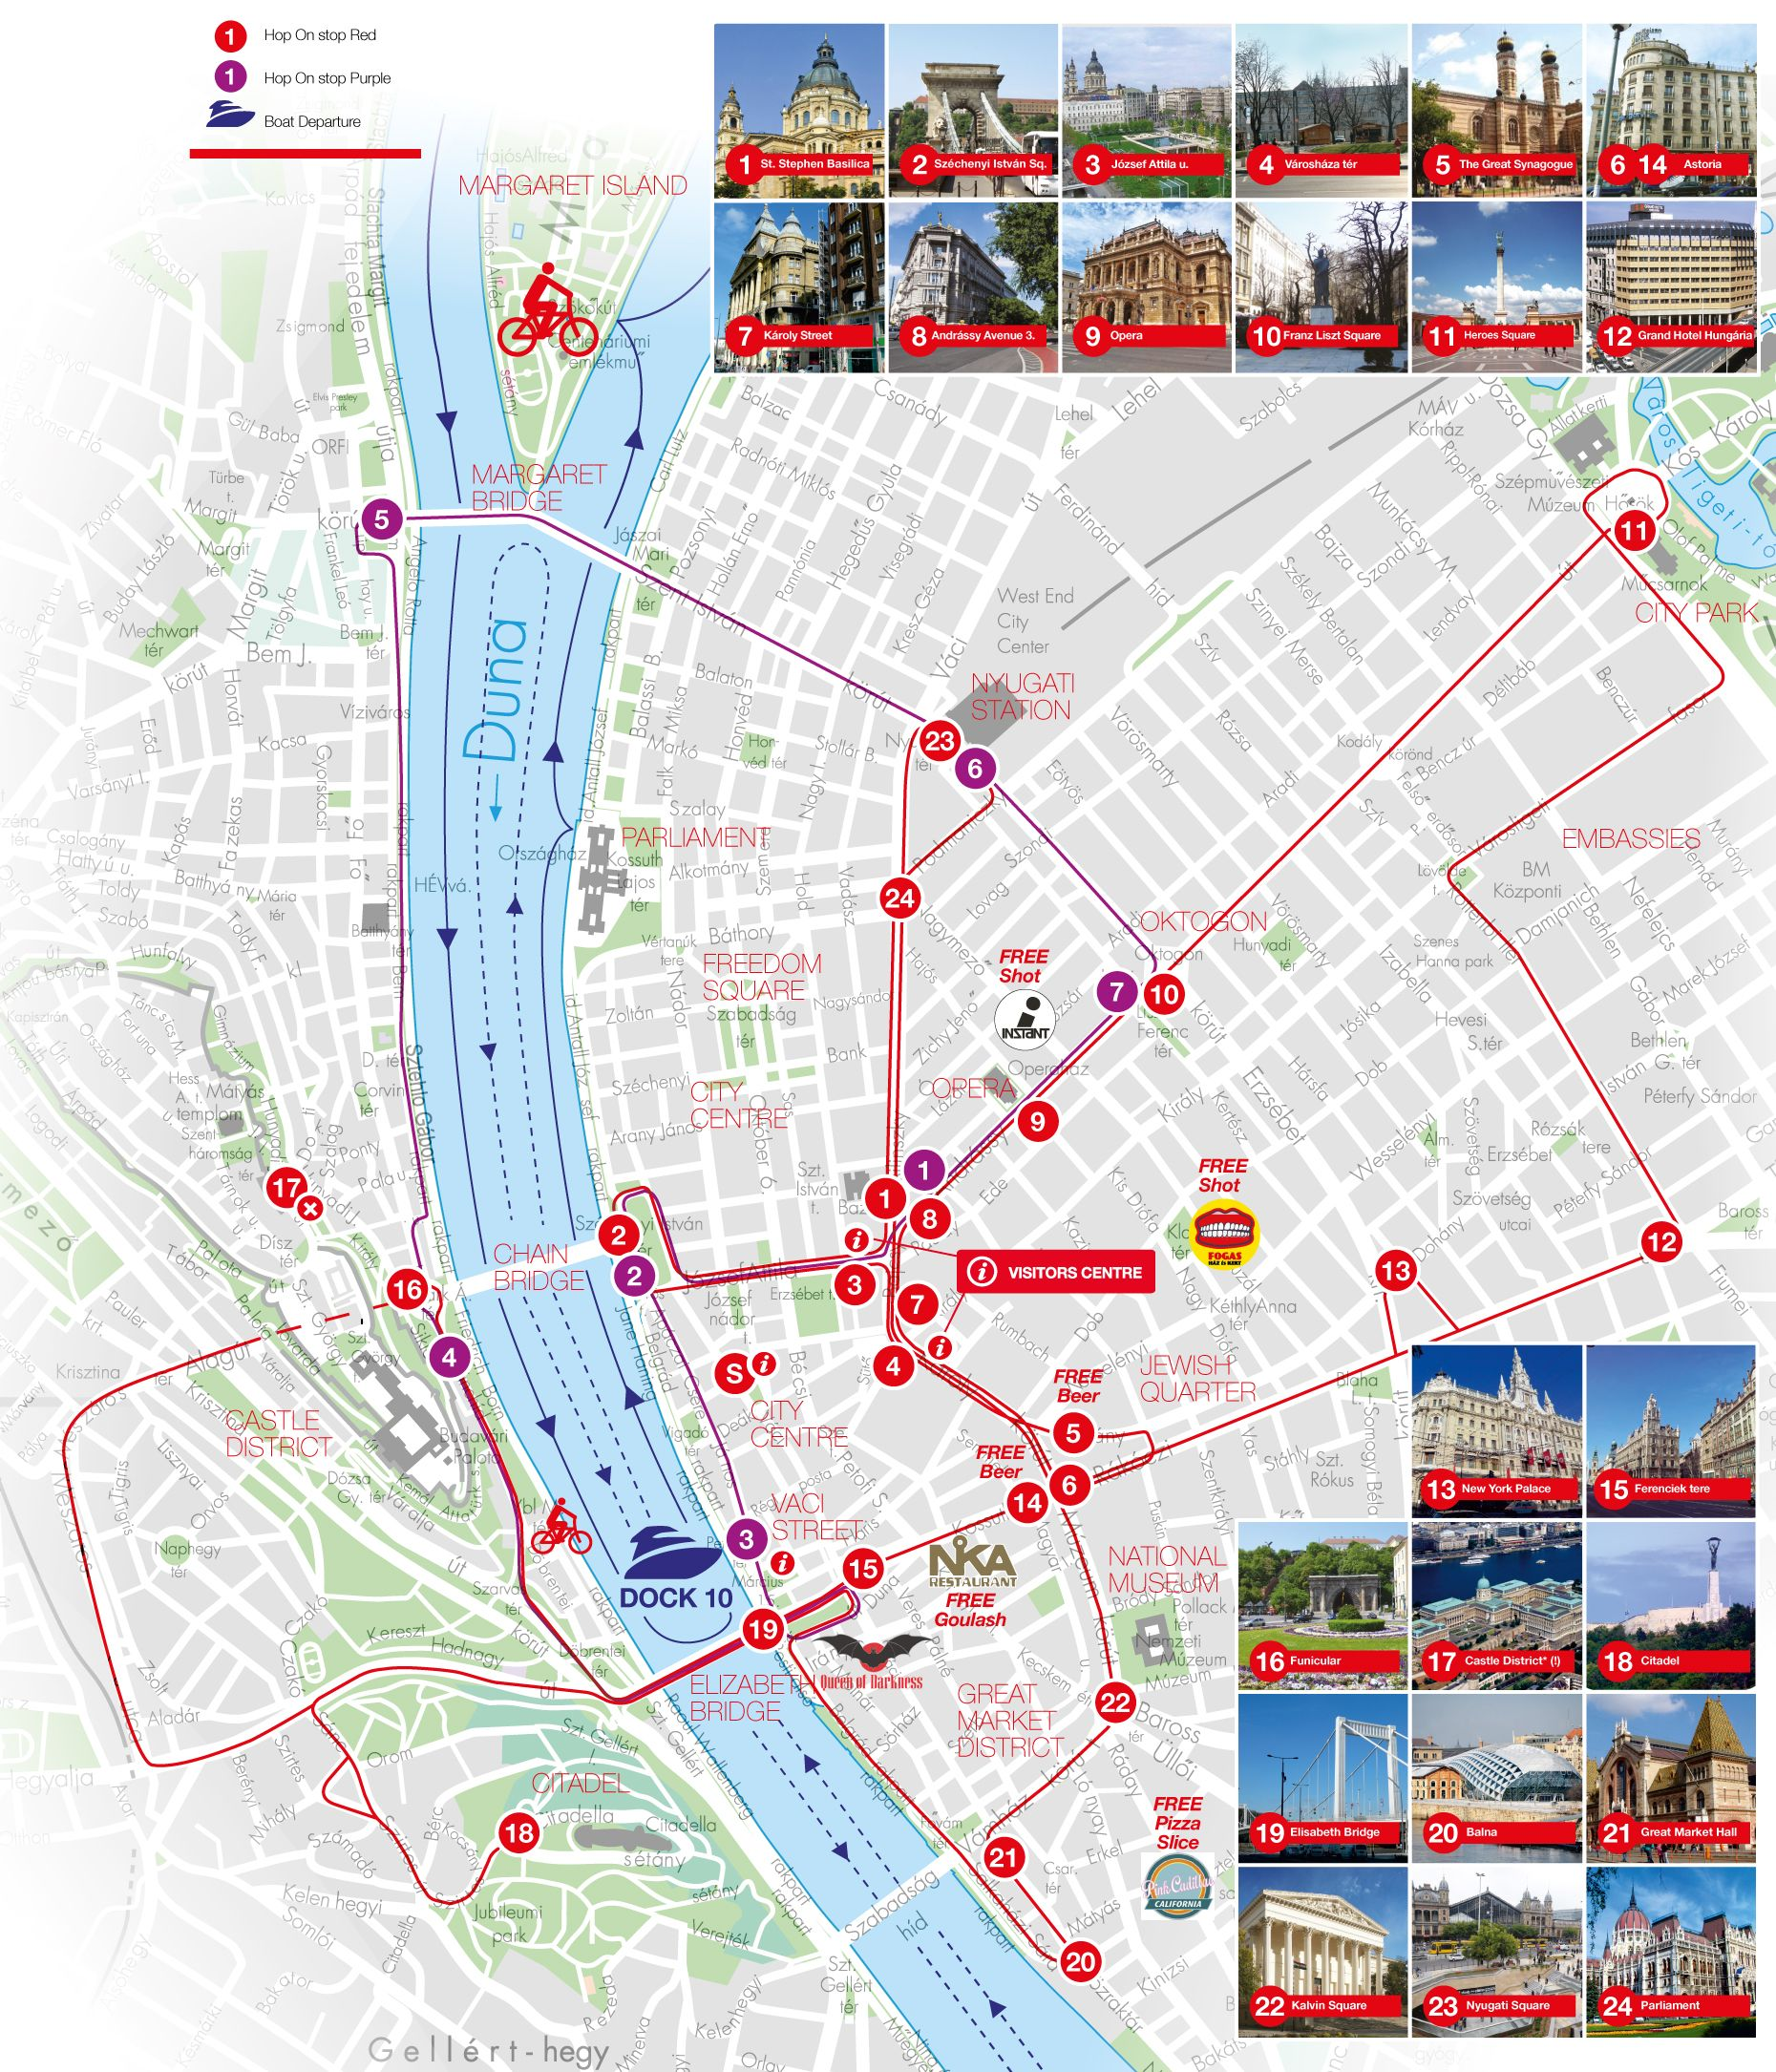 budapest hop on hop off bus map City Sightseeing Budapest Hop On Hop Off Bus Tours Budapest Sightseeing Bus Danube River Cruise budapest hop on hop off bus map